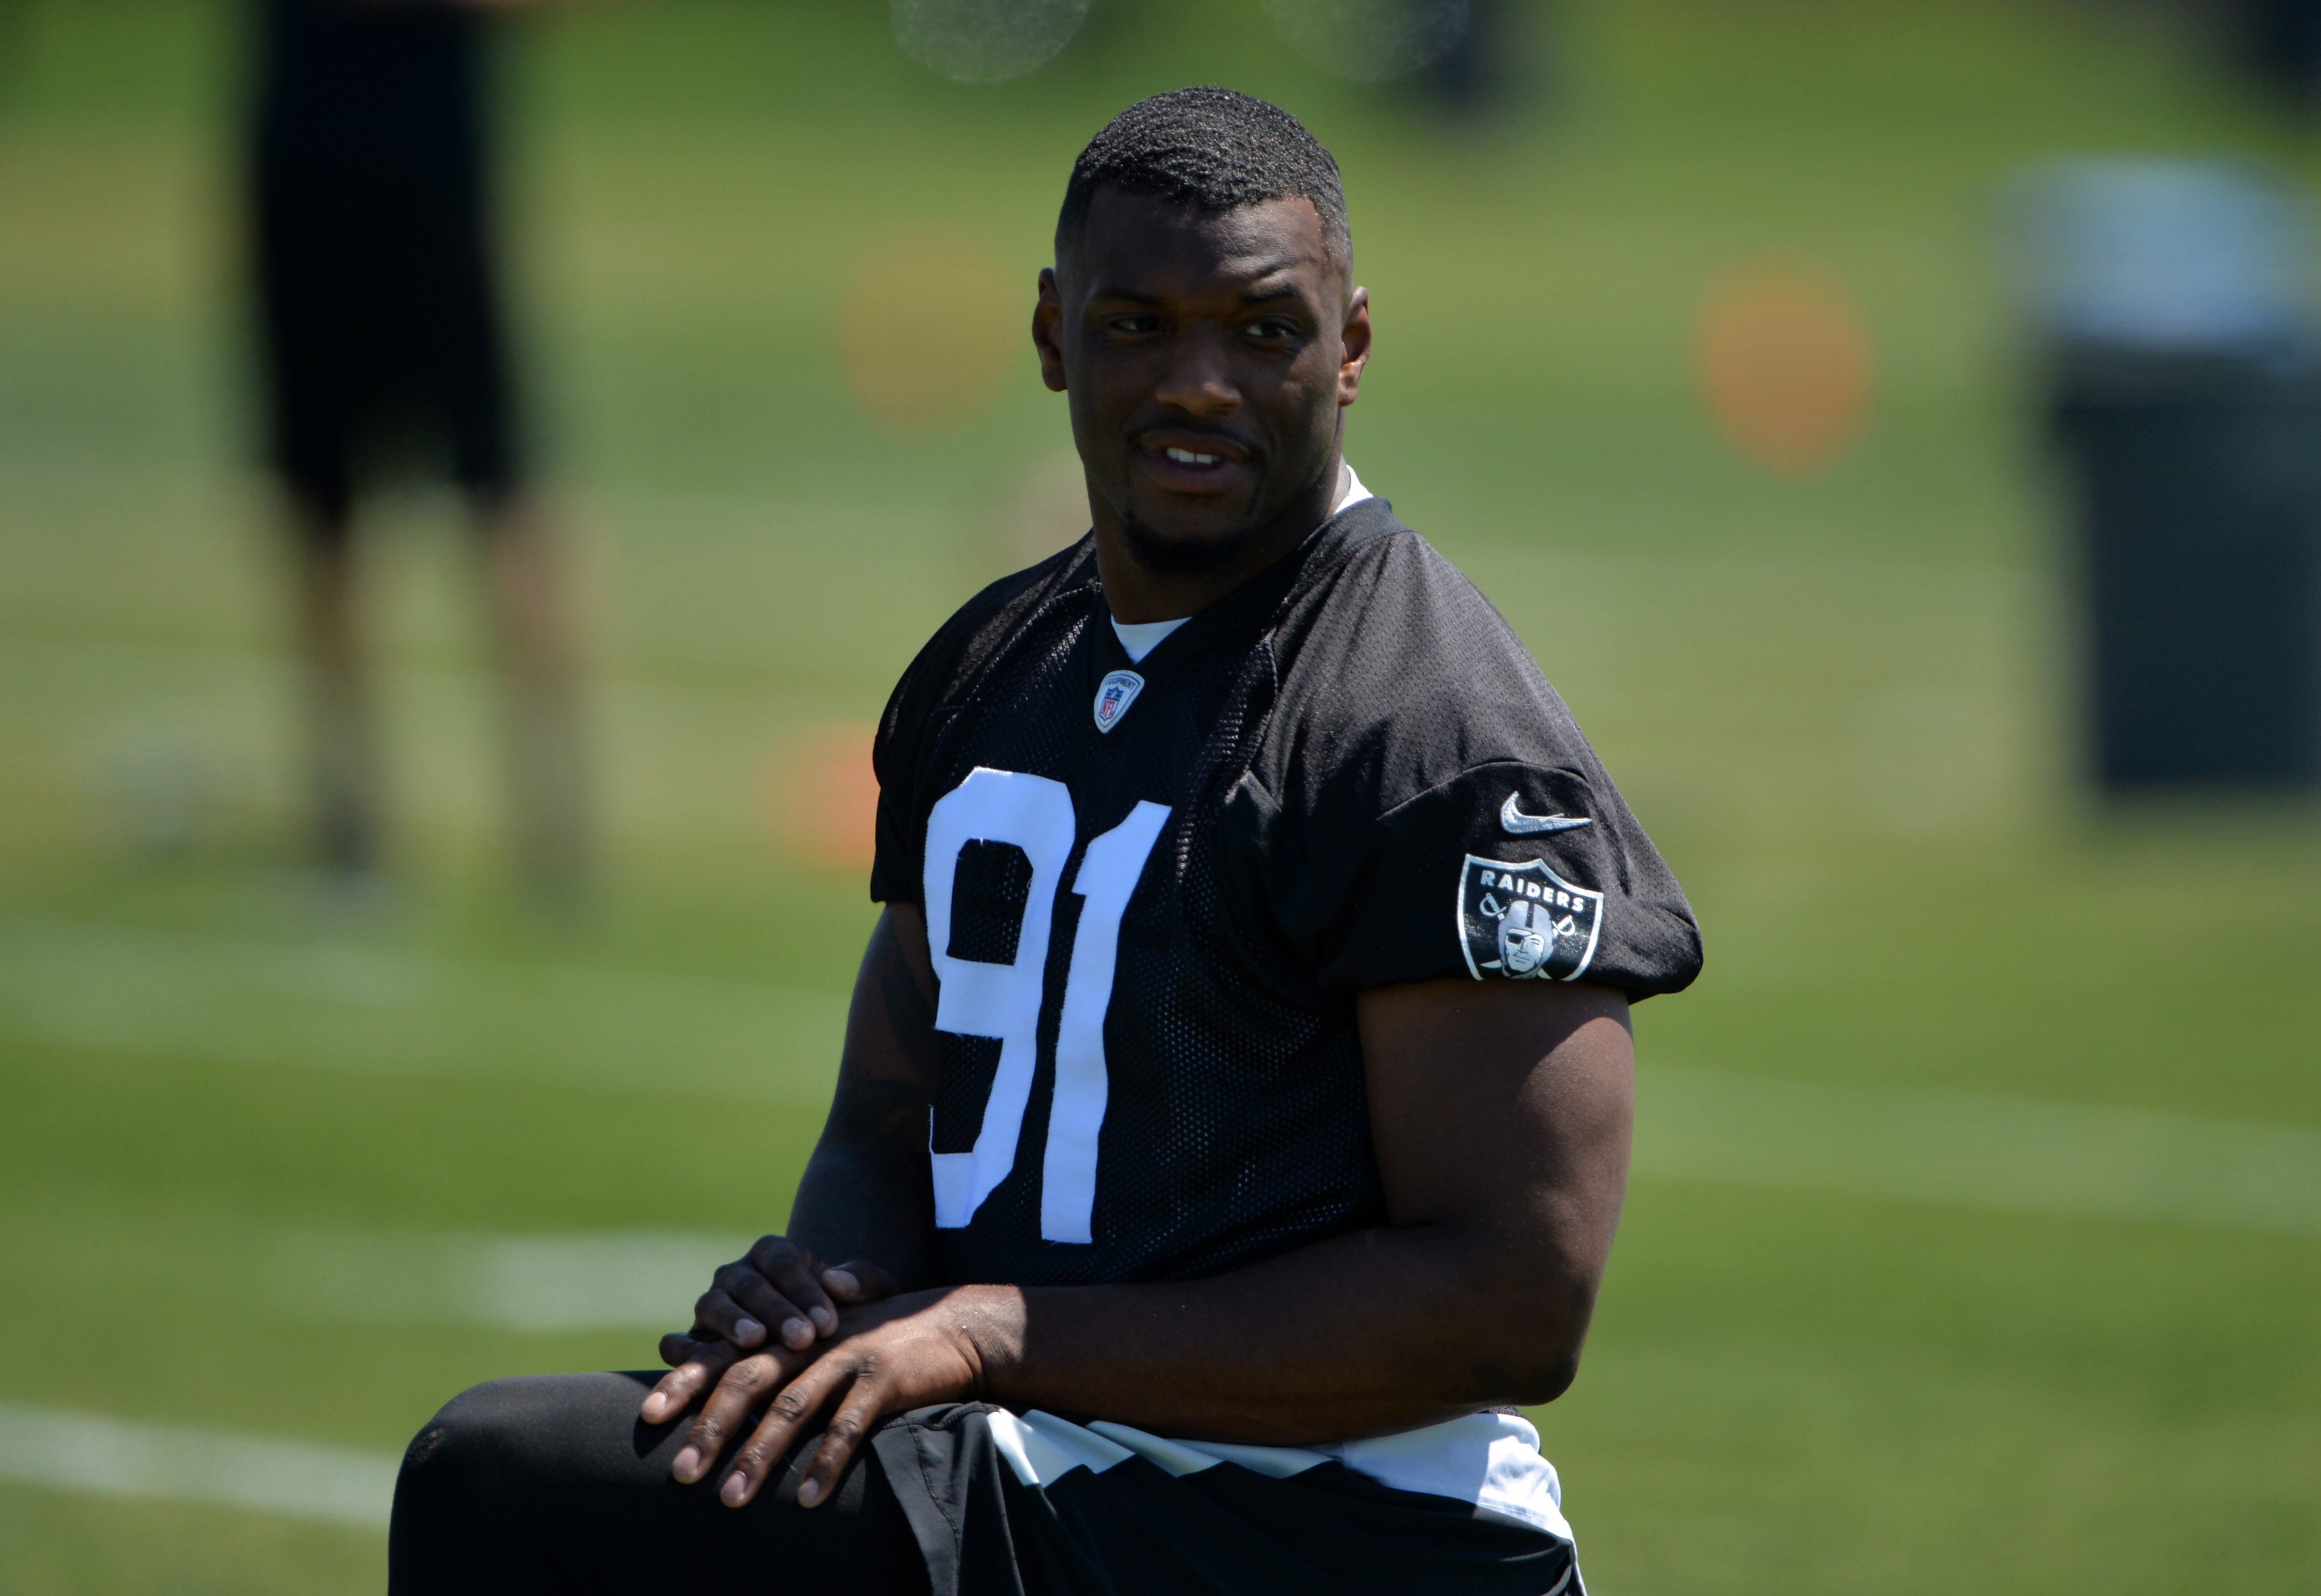 9325638-nfl-oakland-raiders-ota